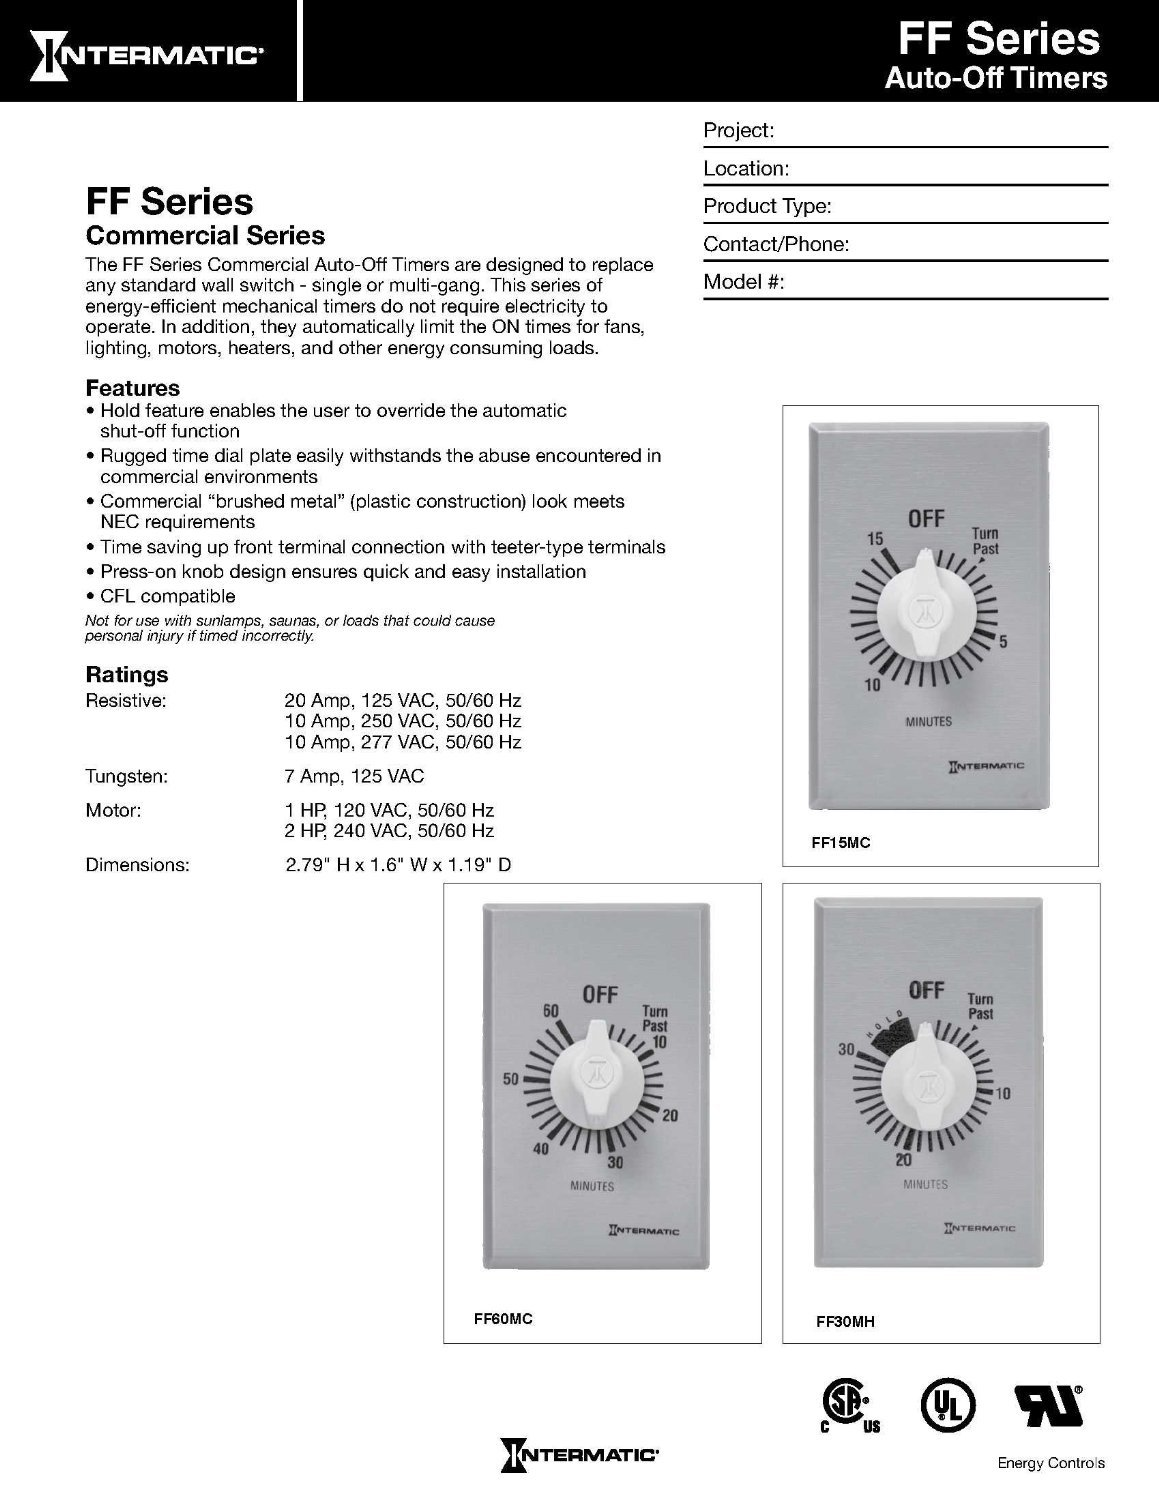 71sscpSXMhL._SL1500_ intermatic ff60mc 60 minute spring loaded wall timer, brushed  at webbmarketing.co